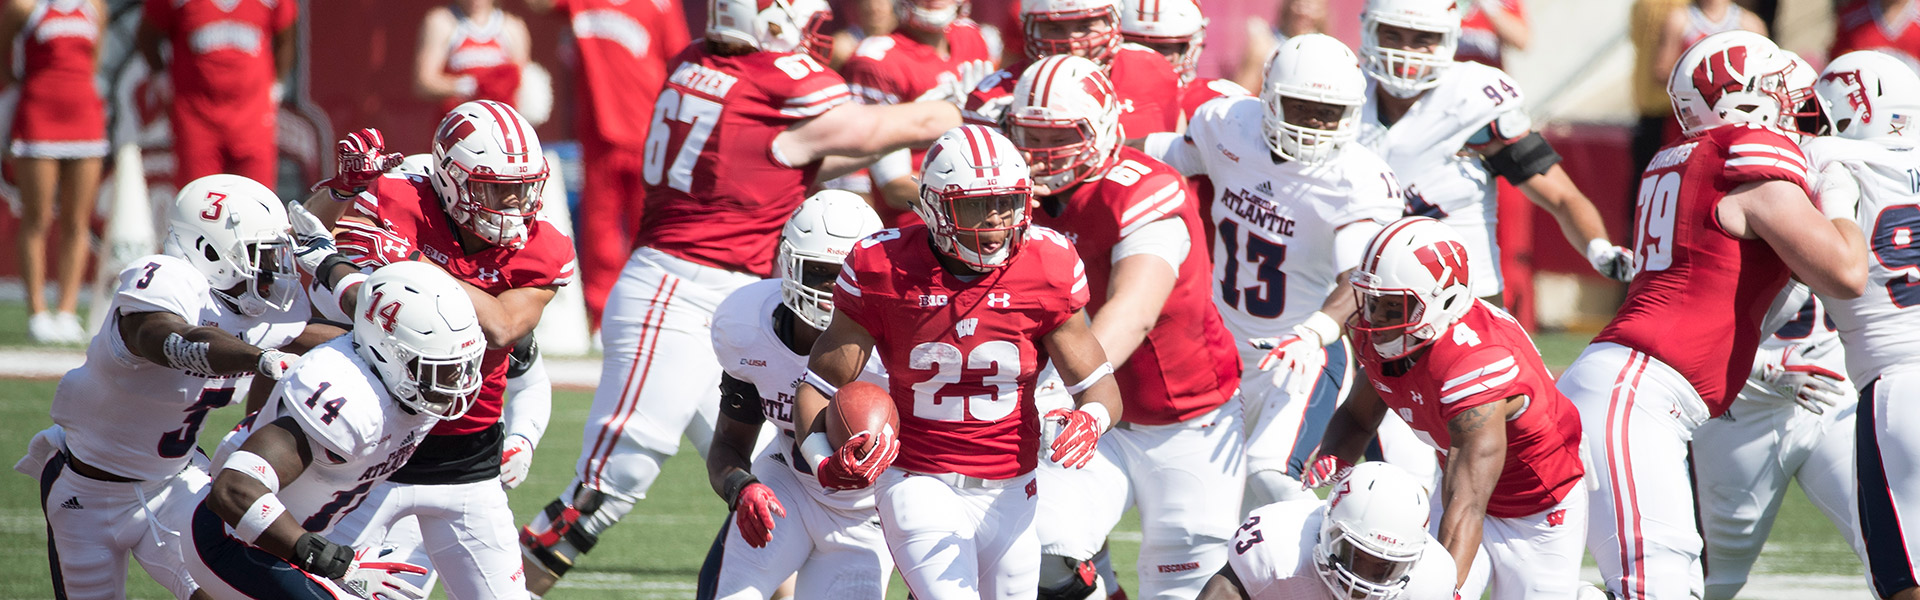 sports physical form 2019 wisconsin  Football Single Game Tickets | Wisconsin Badgers